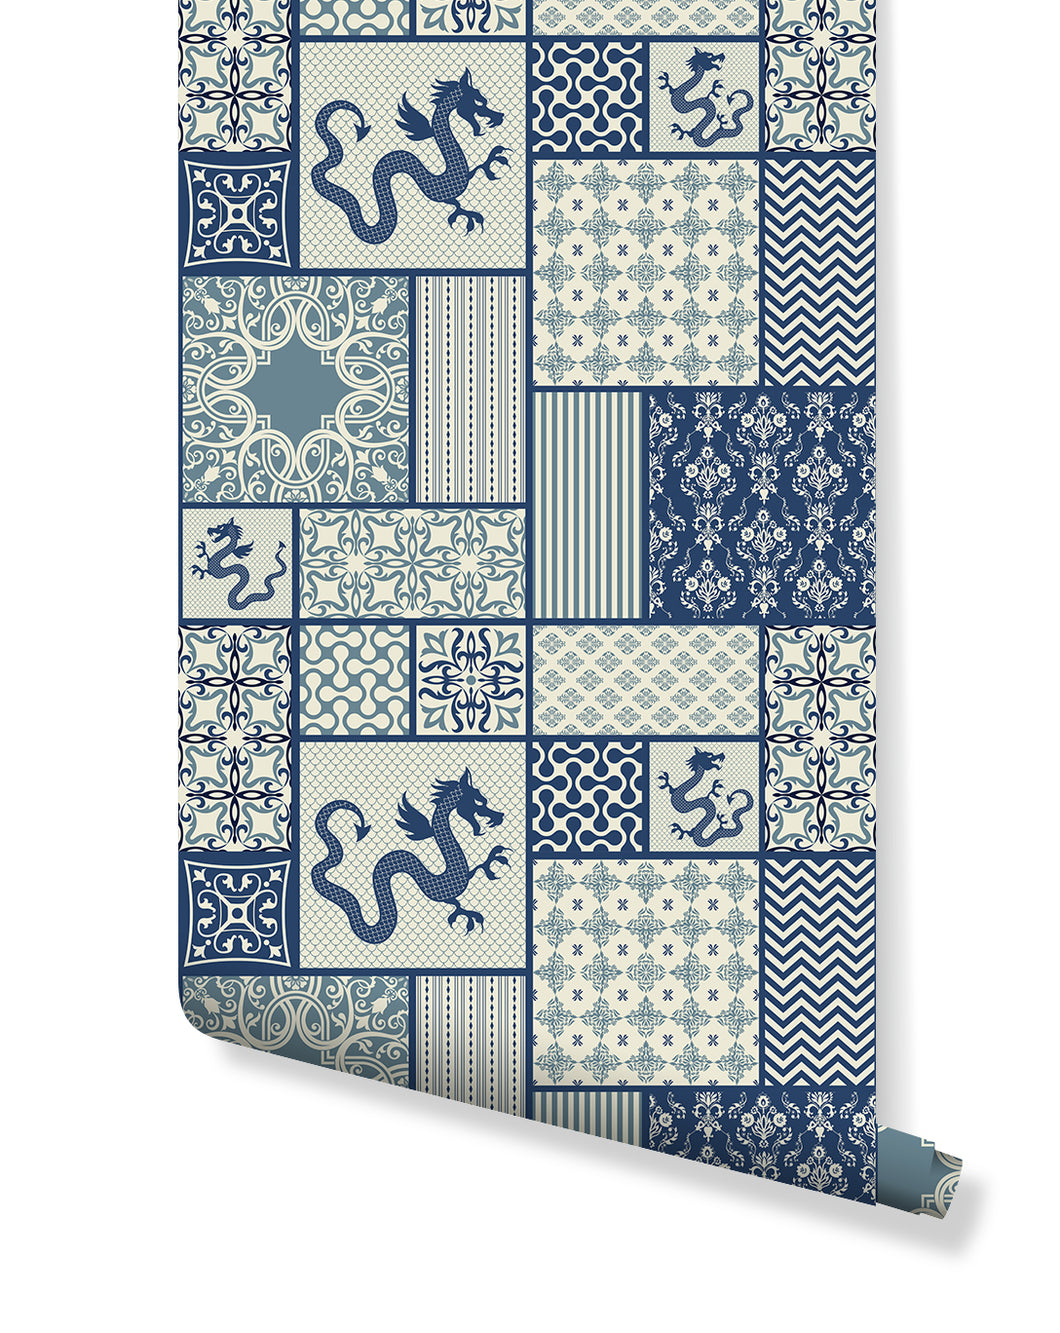 Self Adhesive Blue & White Moroccan Tiles Removable Wallpaper CC212